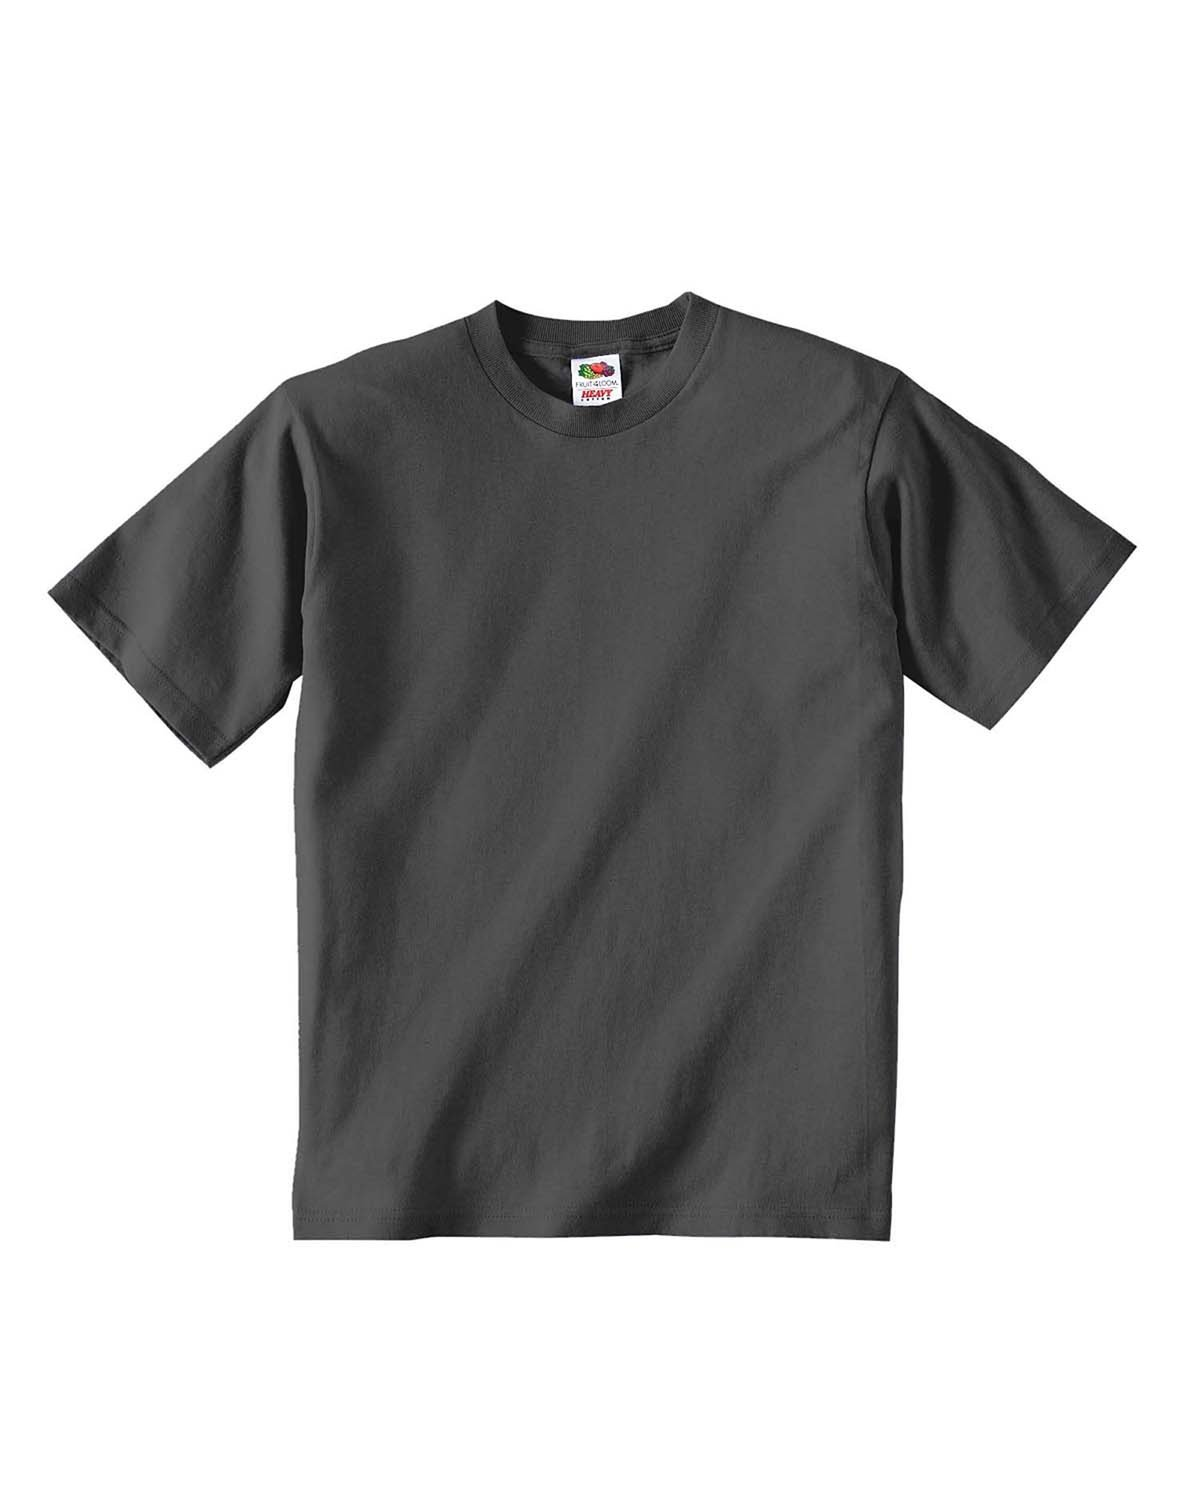 Fruit of the Loom Youth HD Cotton™ T-Shirt CHARCOAL GREY